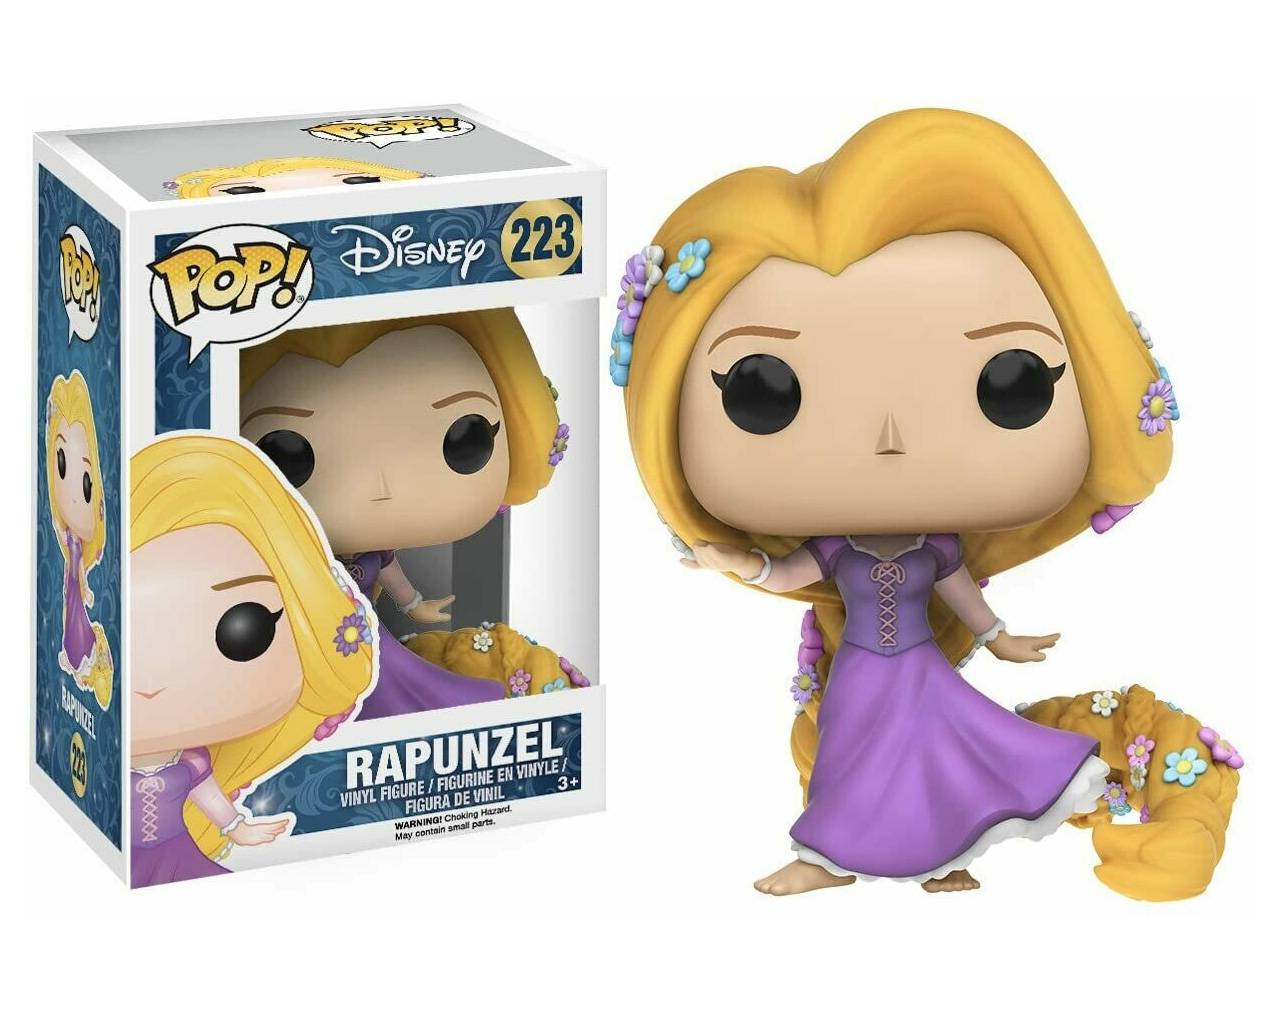 Rapunzel (Dancing) Pop! Vinyl